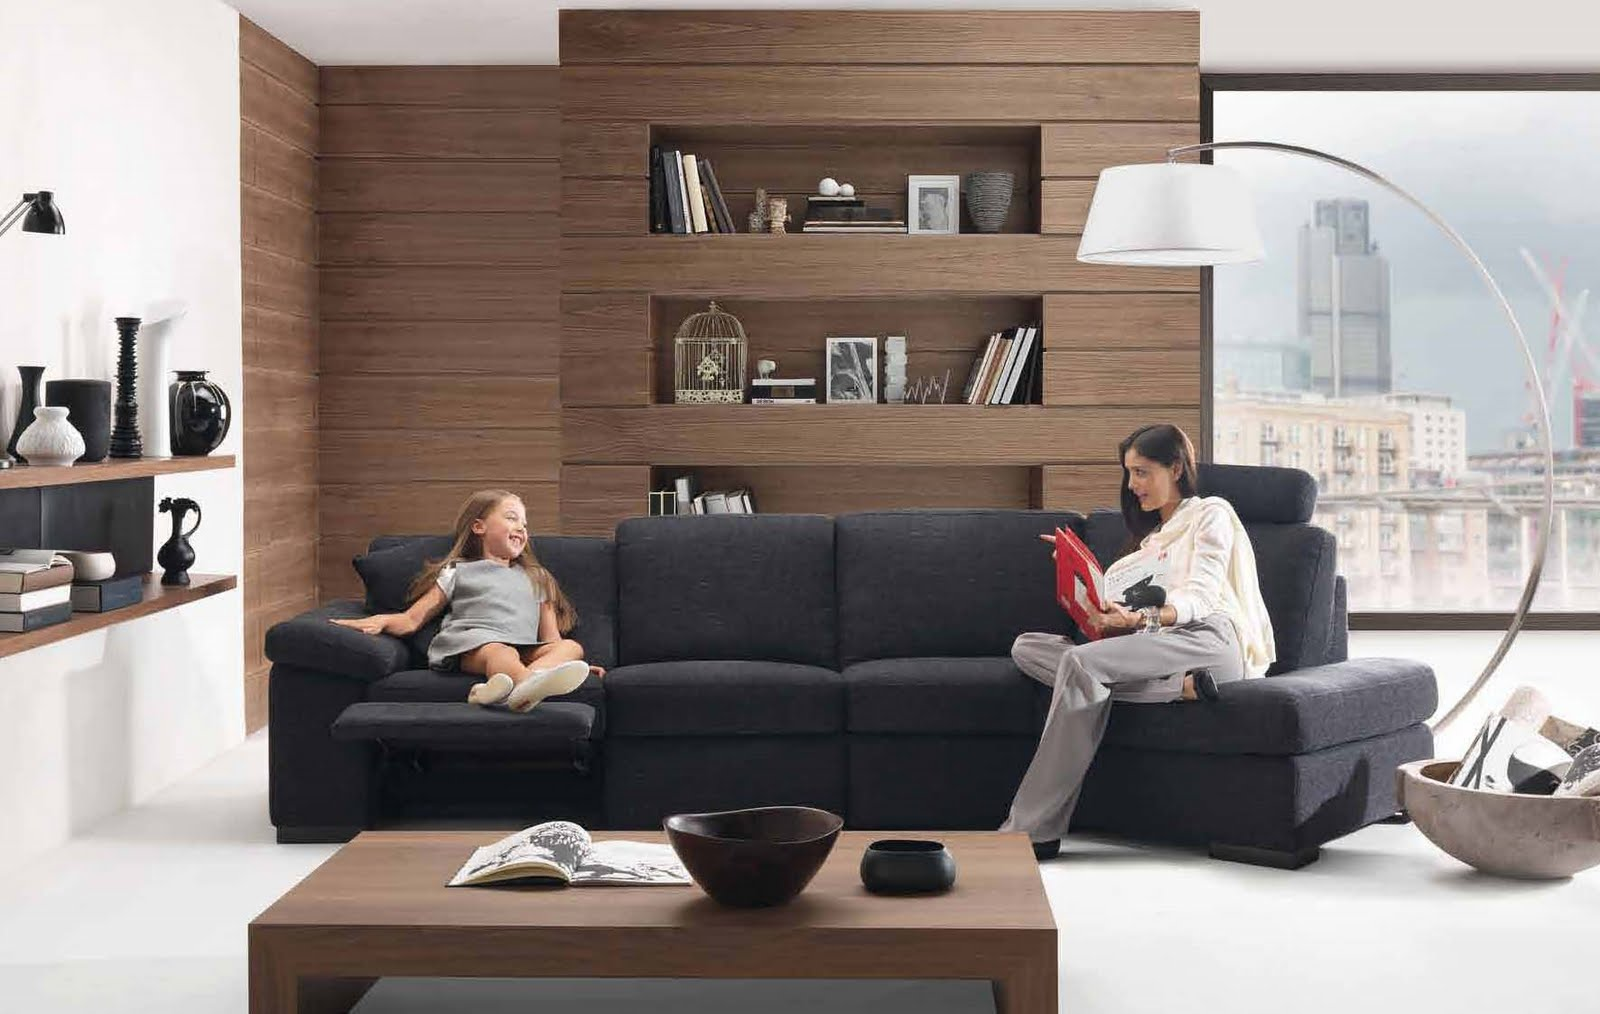 Merveilleux Modern Living Room Interior Design Styles 2010 By Natuzzi